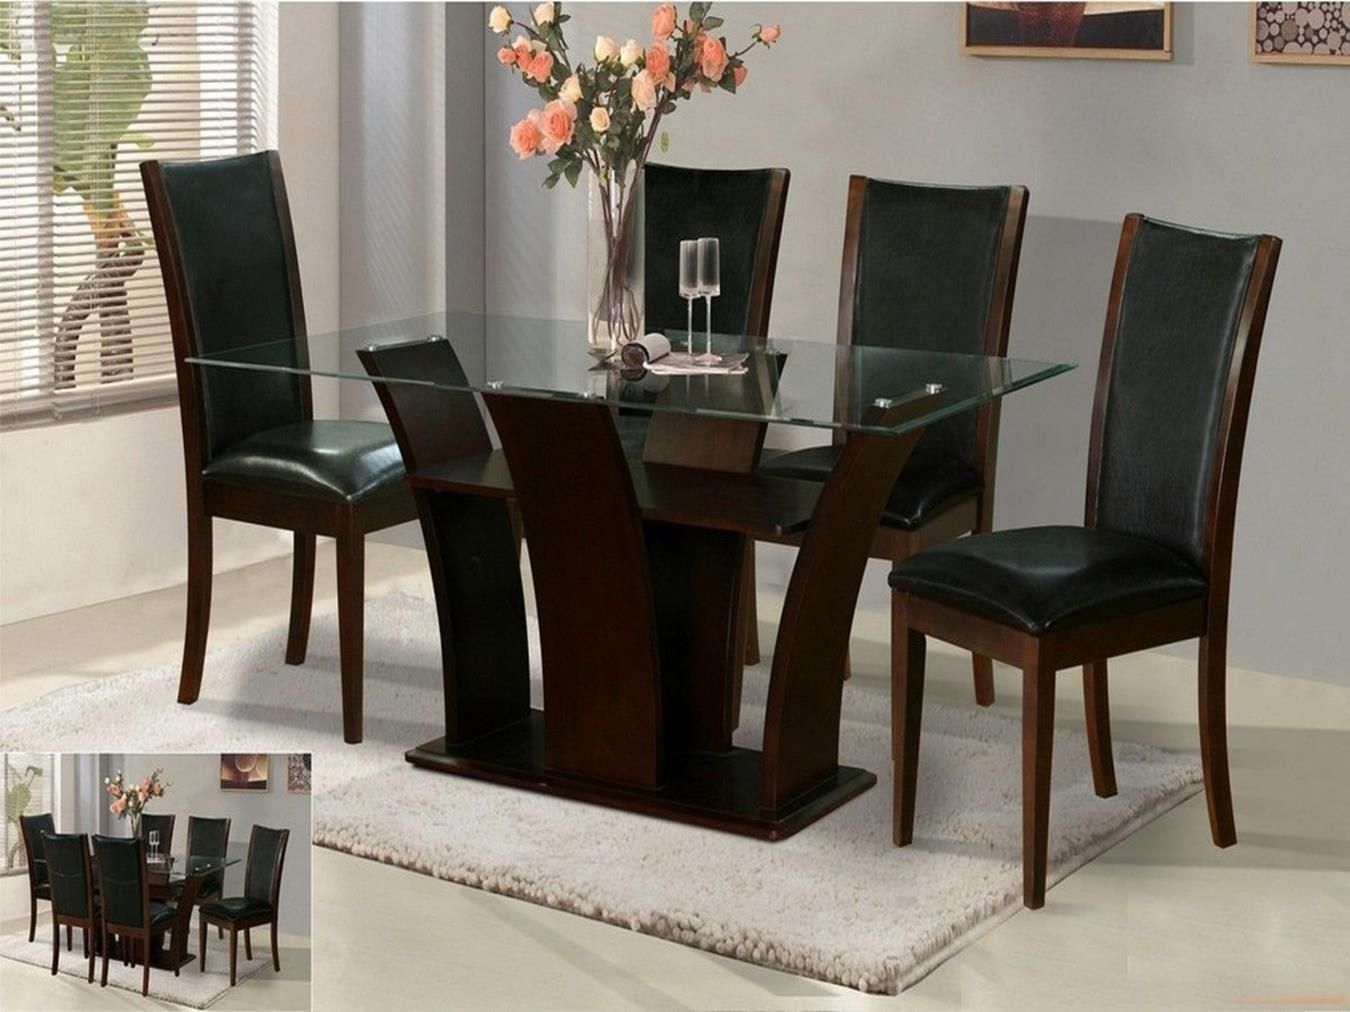 43 Luxury Modern Italian Dining Room Sets Ideas Glass Dining Table Set Glass Dining Room Table Dining Room Sets